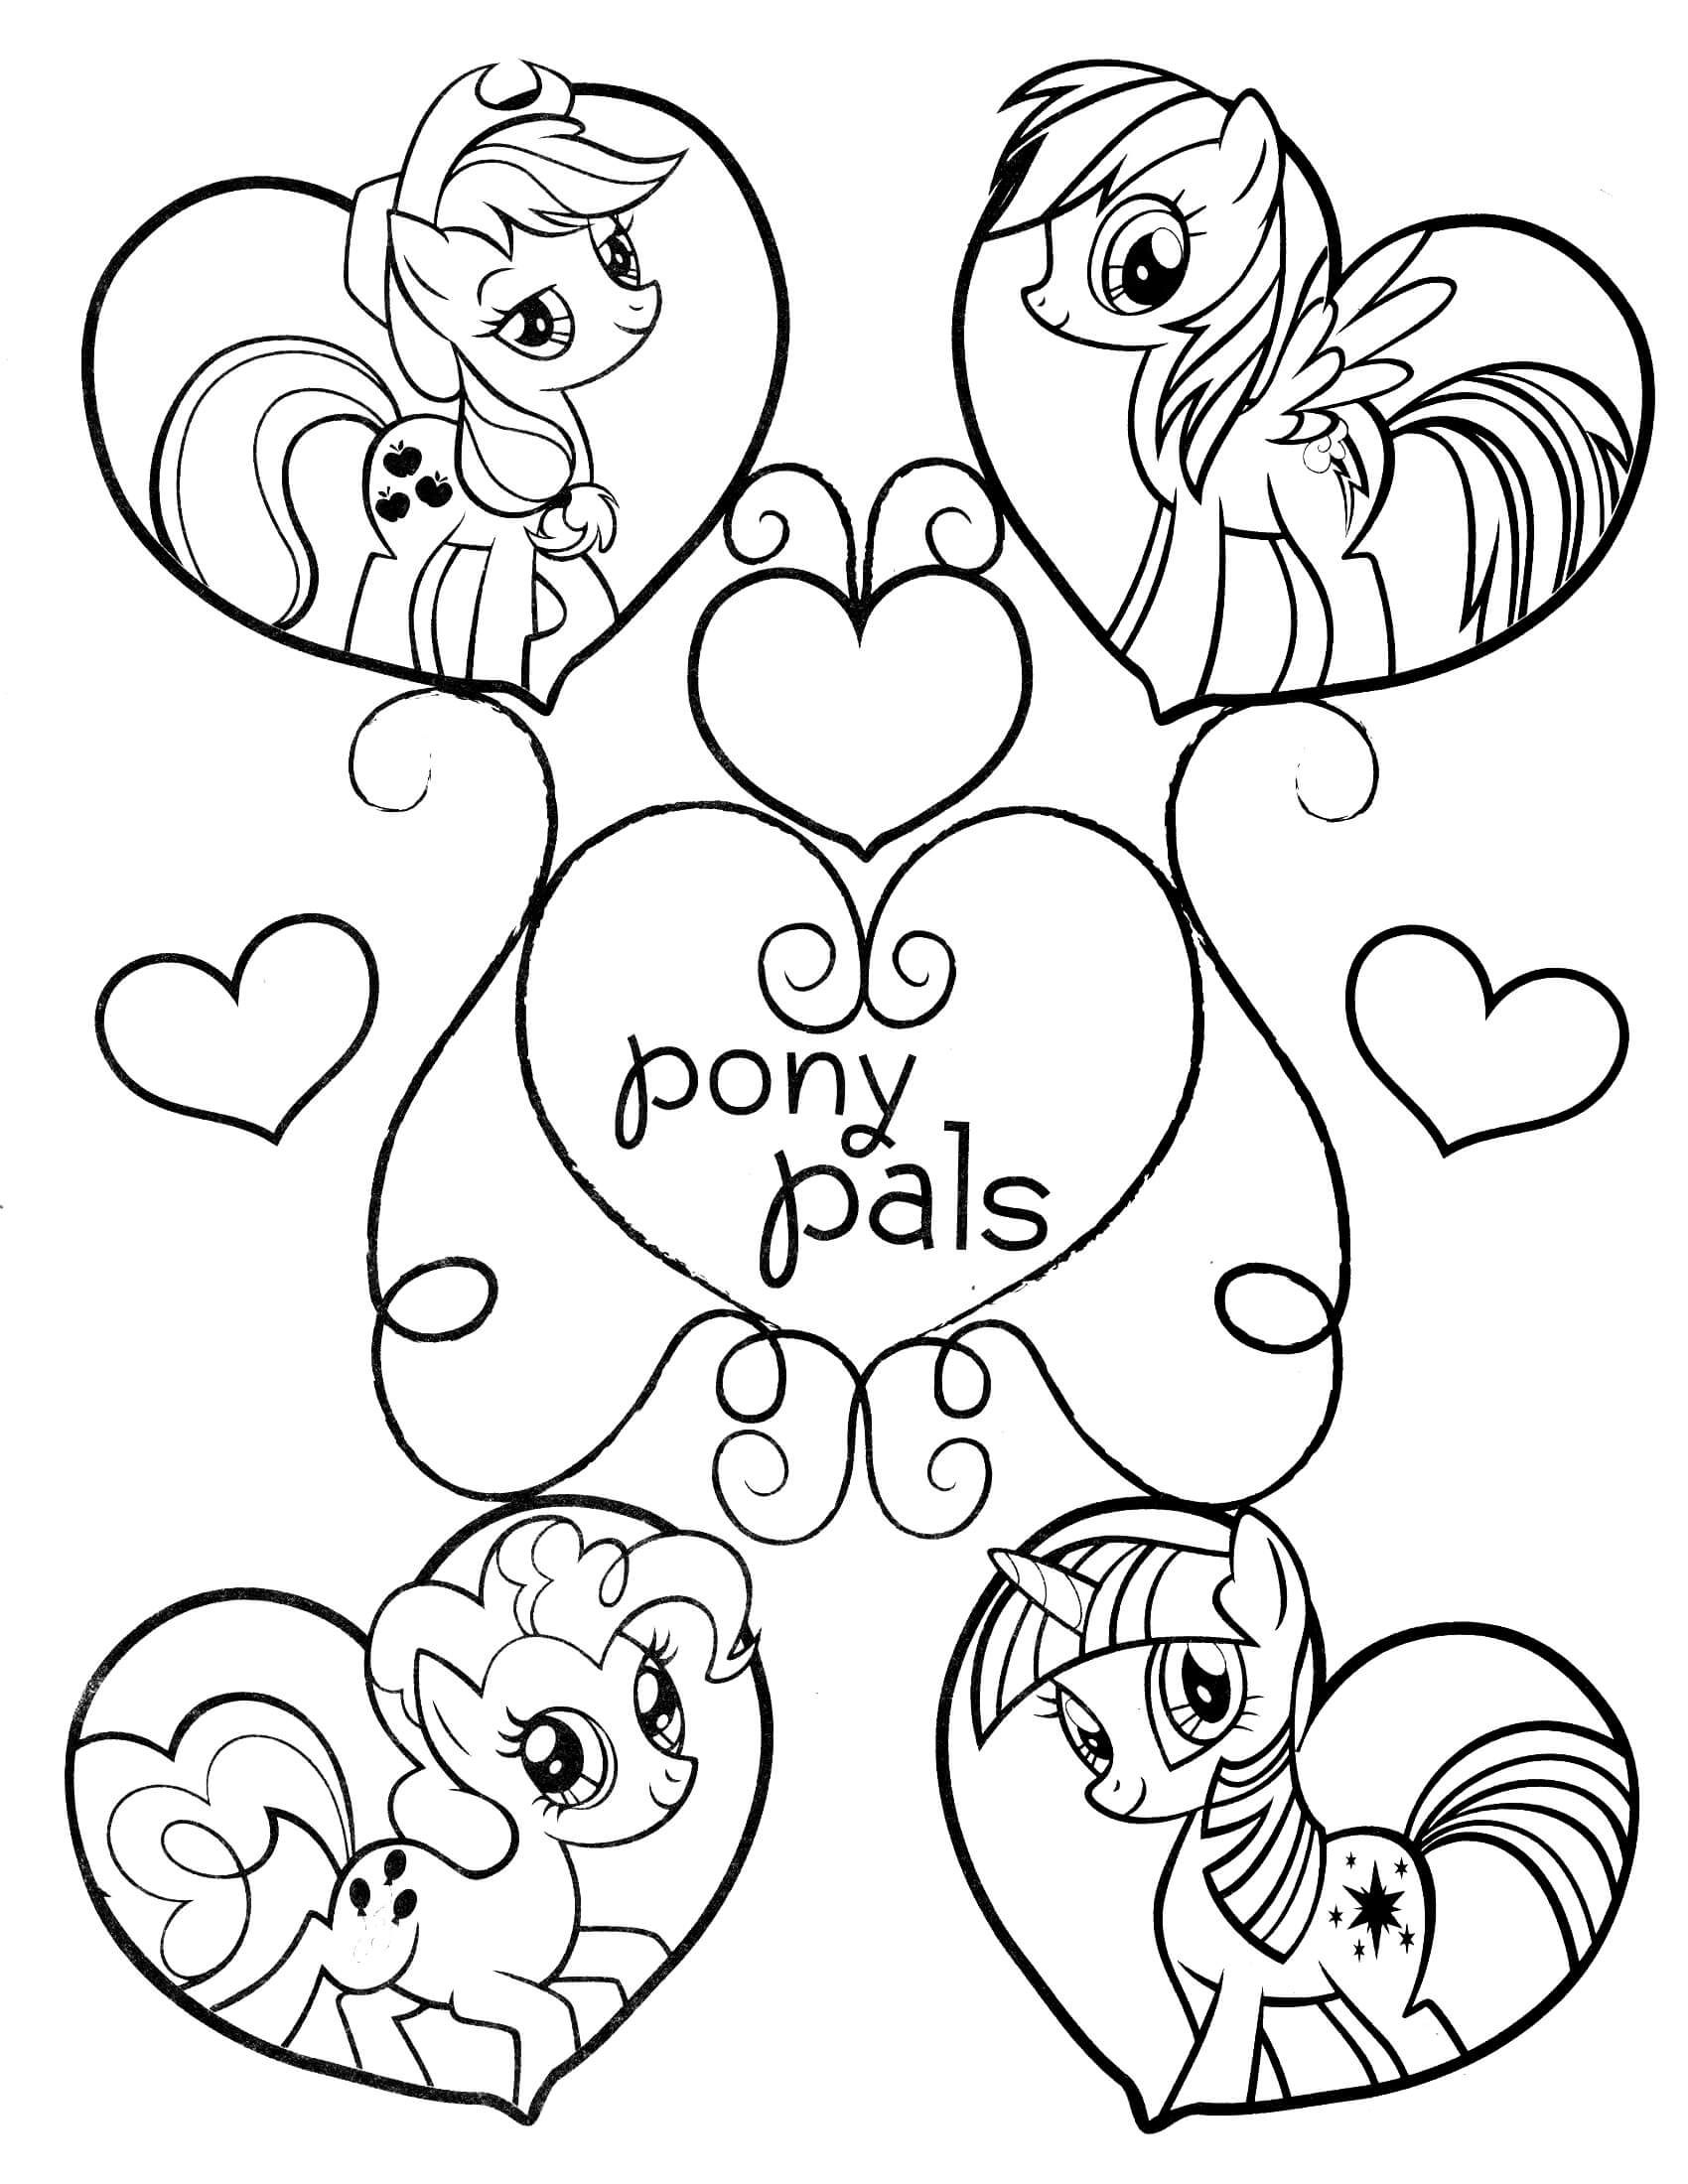 My Little Pony Coloring Page My Little Pony Coloring Mermaid Coloring Pages Heart Coloring Pages